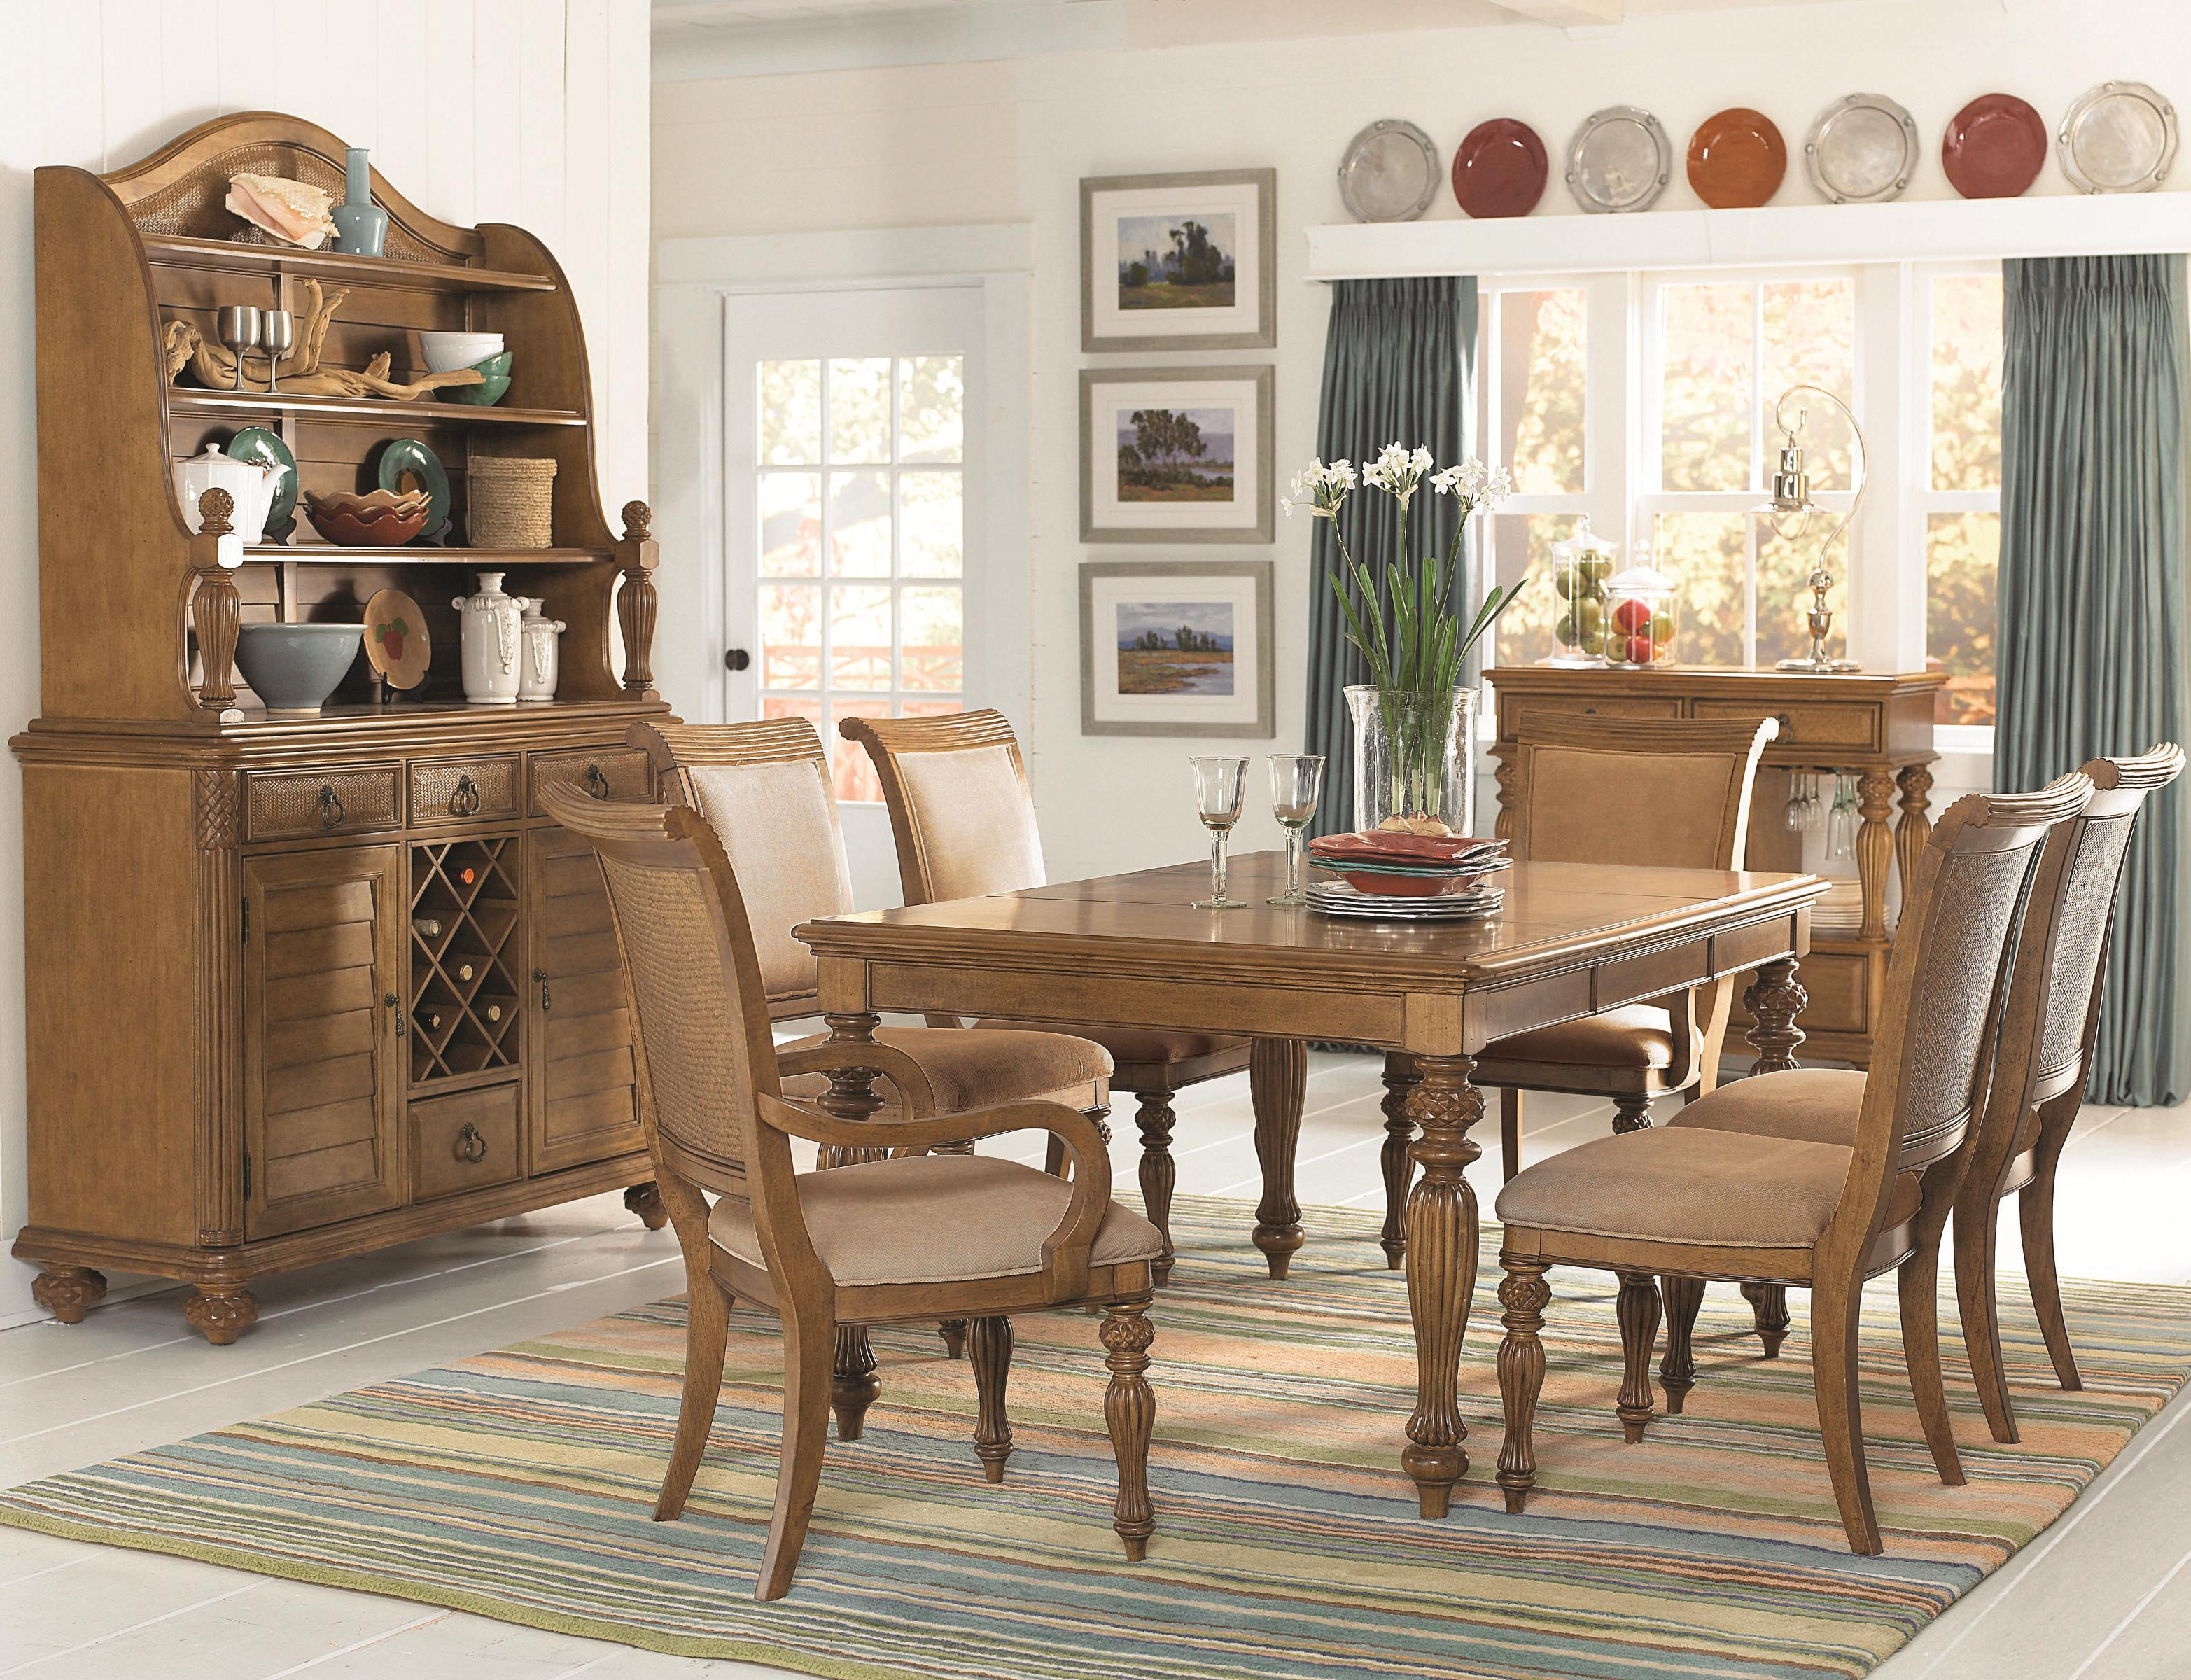 7 Piece Rectangular Turned Carved Leg Dining Table With Two 20